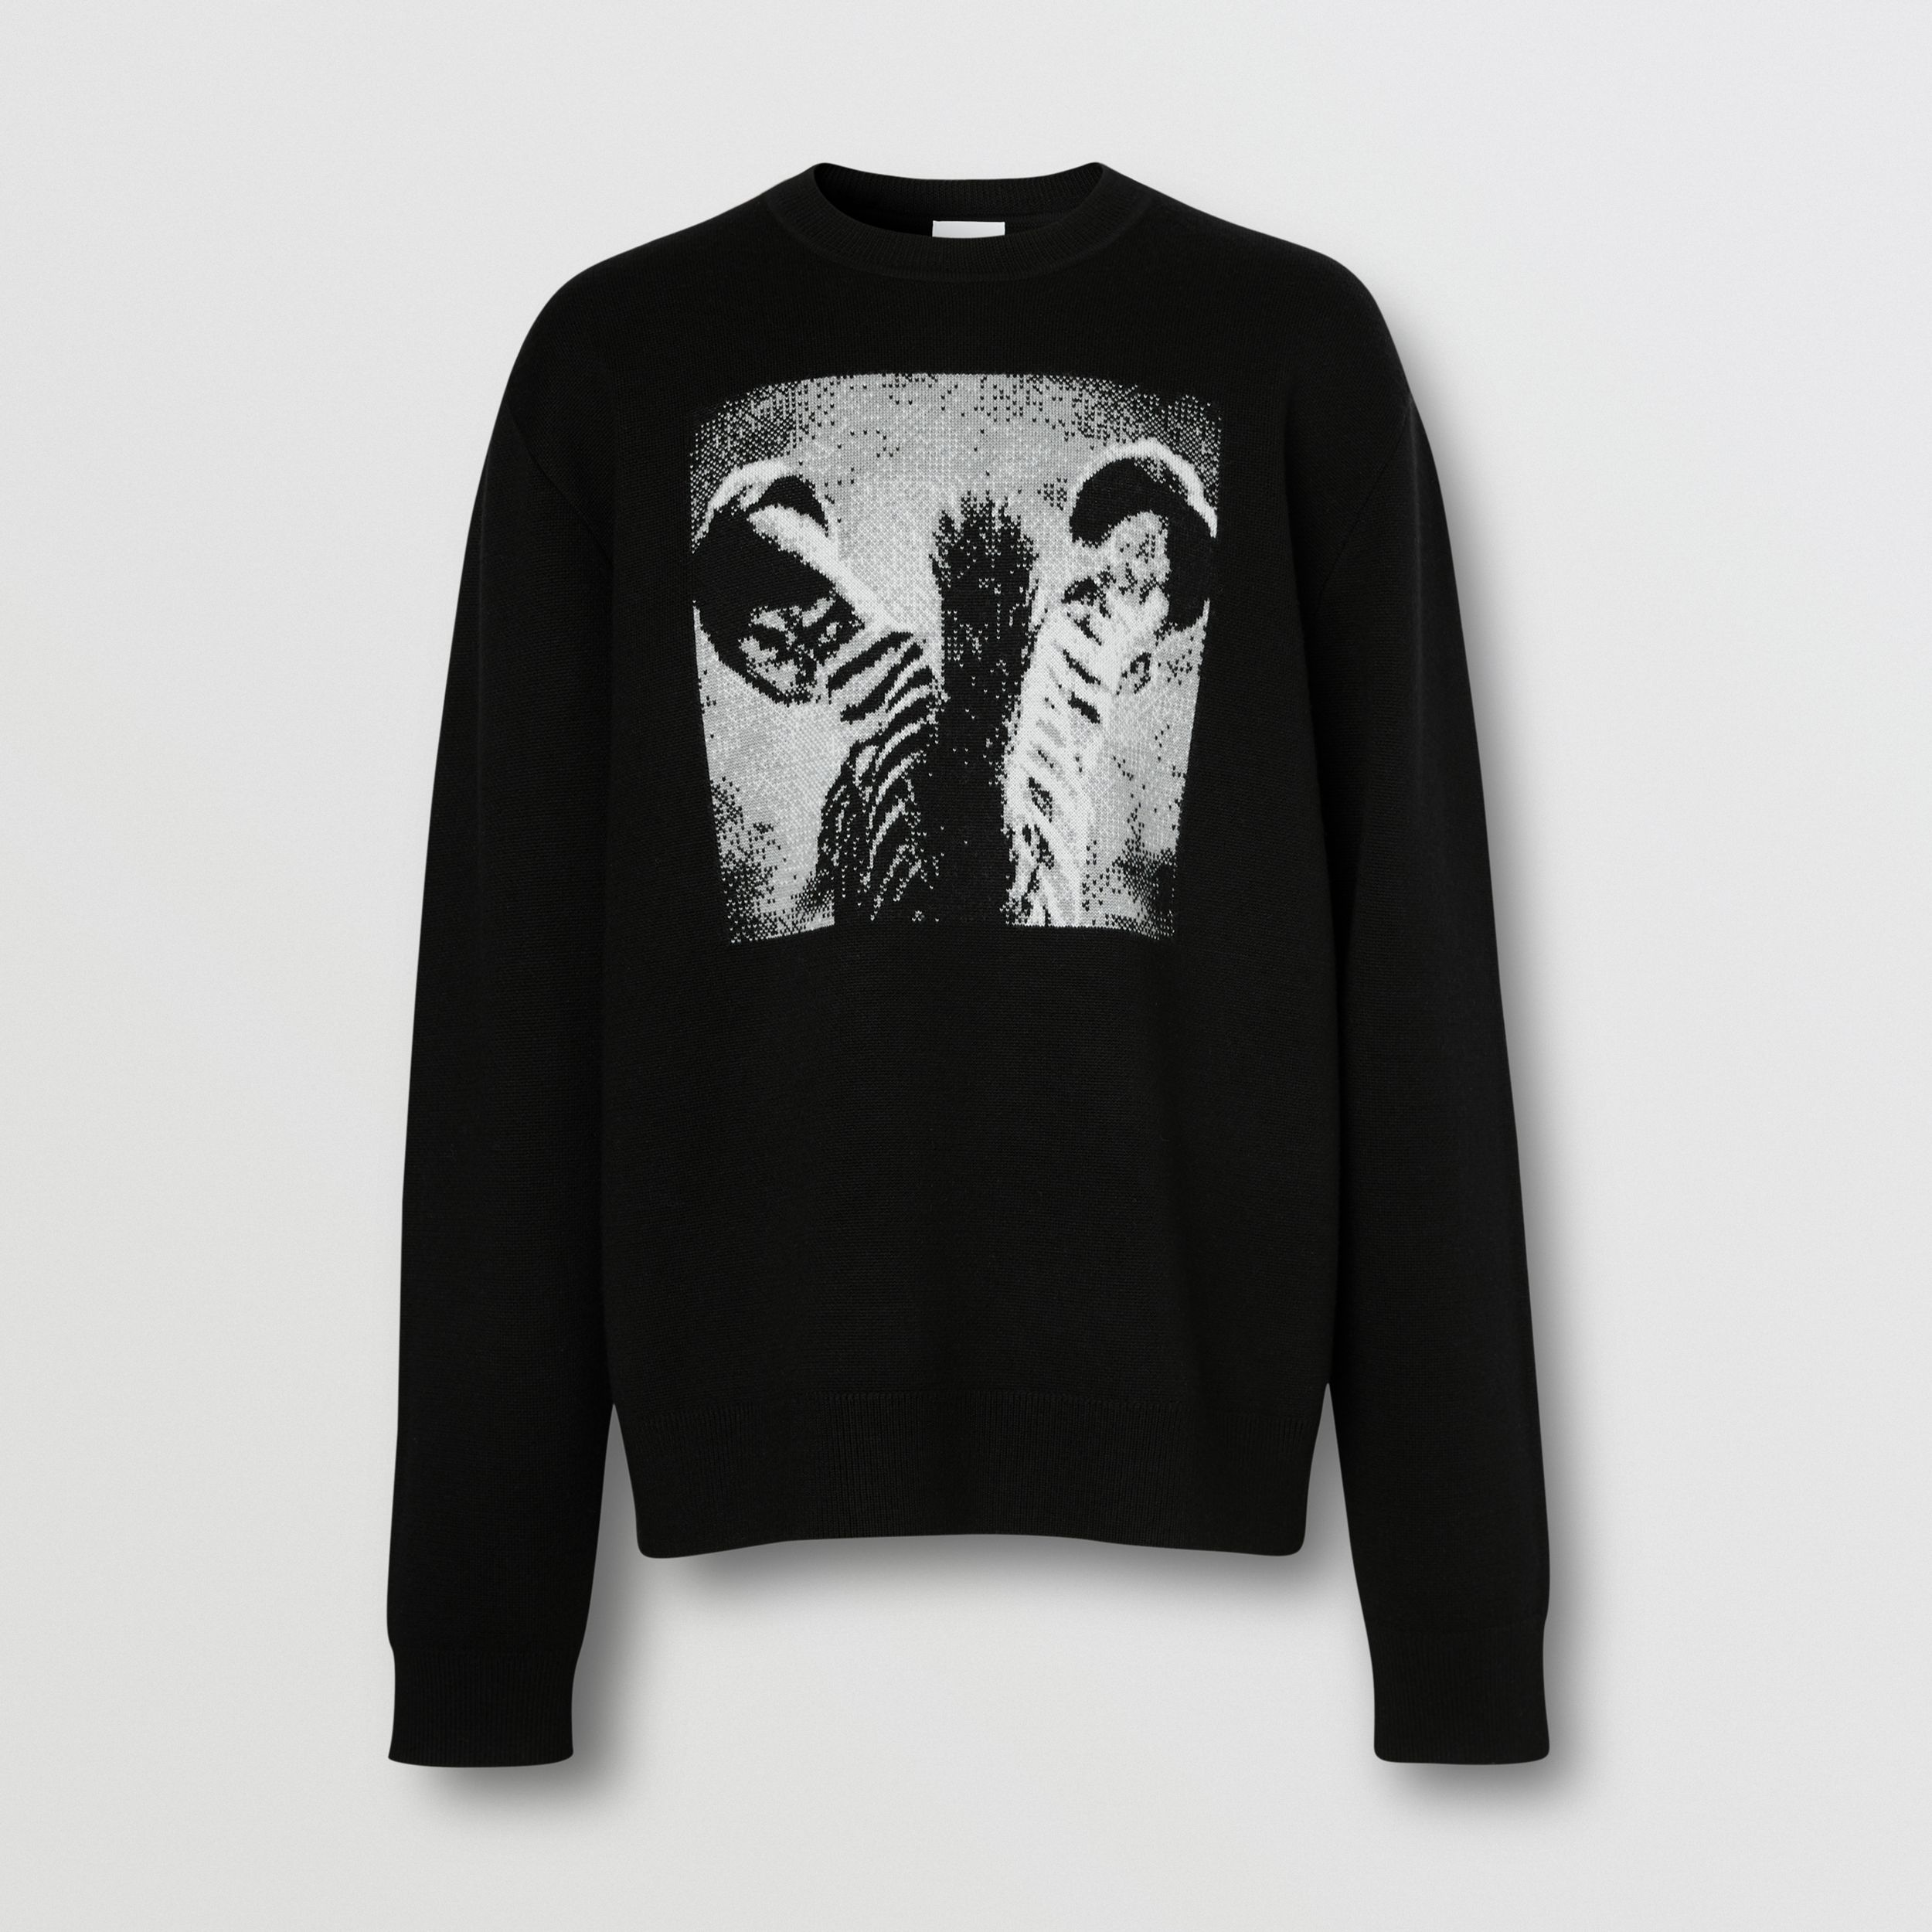 Zebra Wool Jacquard Sweater in Black - Men | Burberry - 4